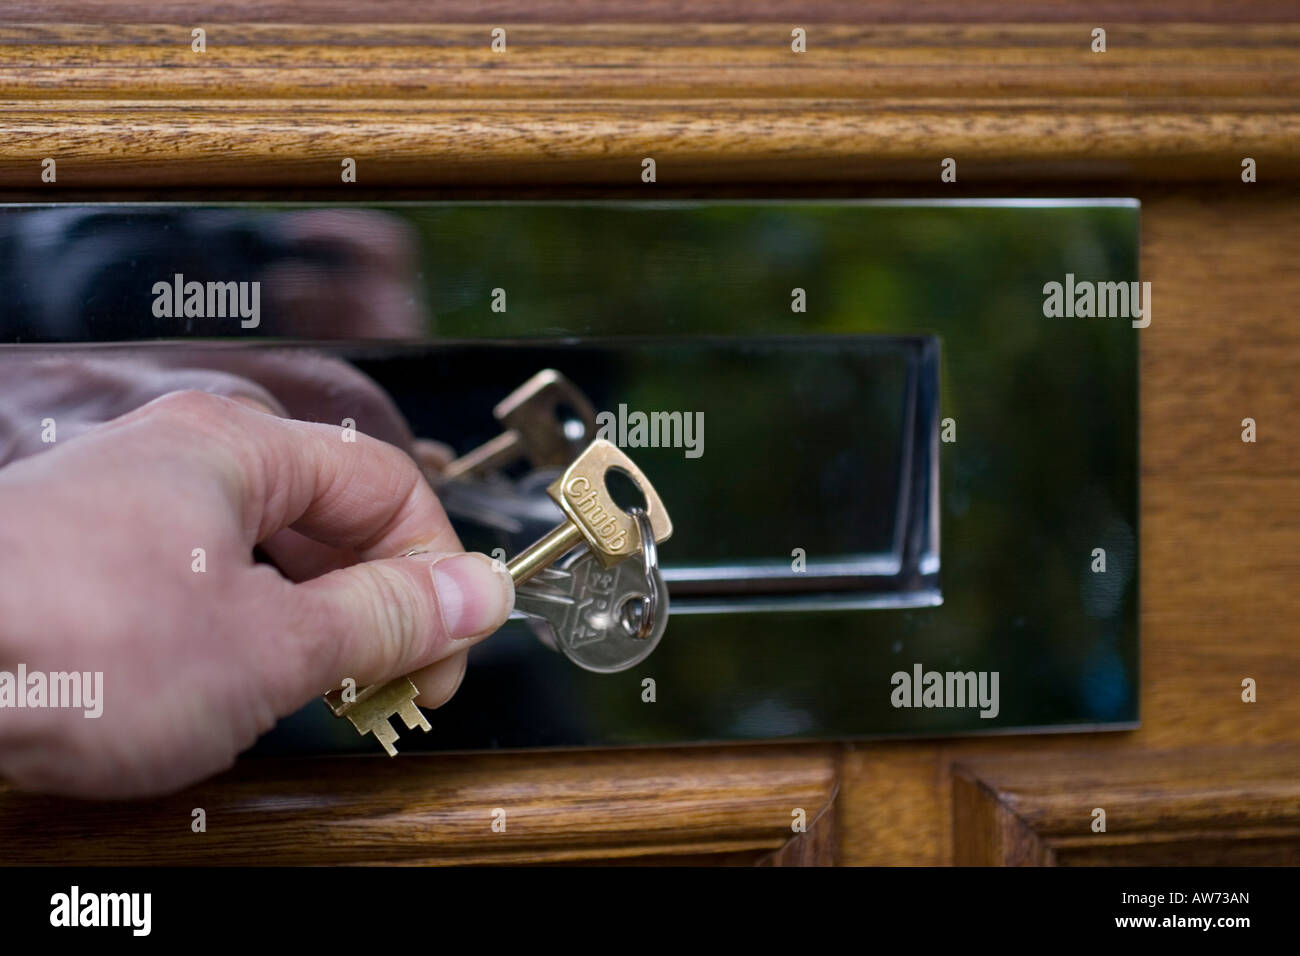 posting keys through the letterbox of a house due to inability to pay mortgage - Stock Image